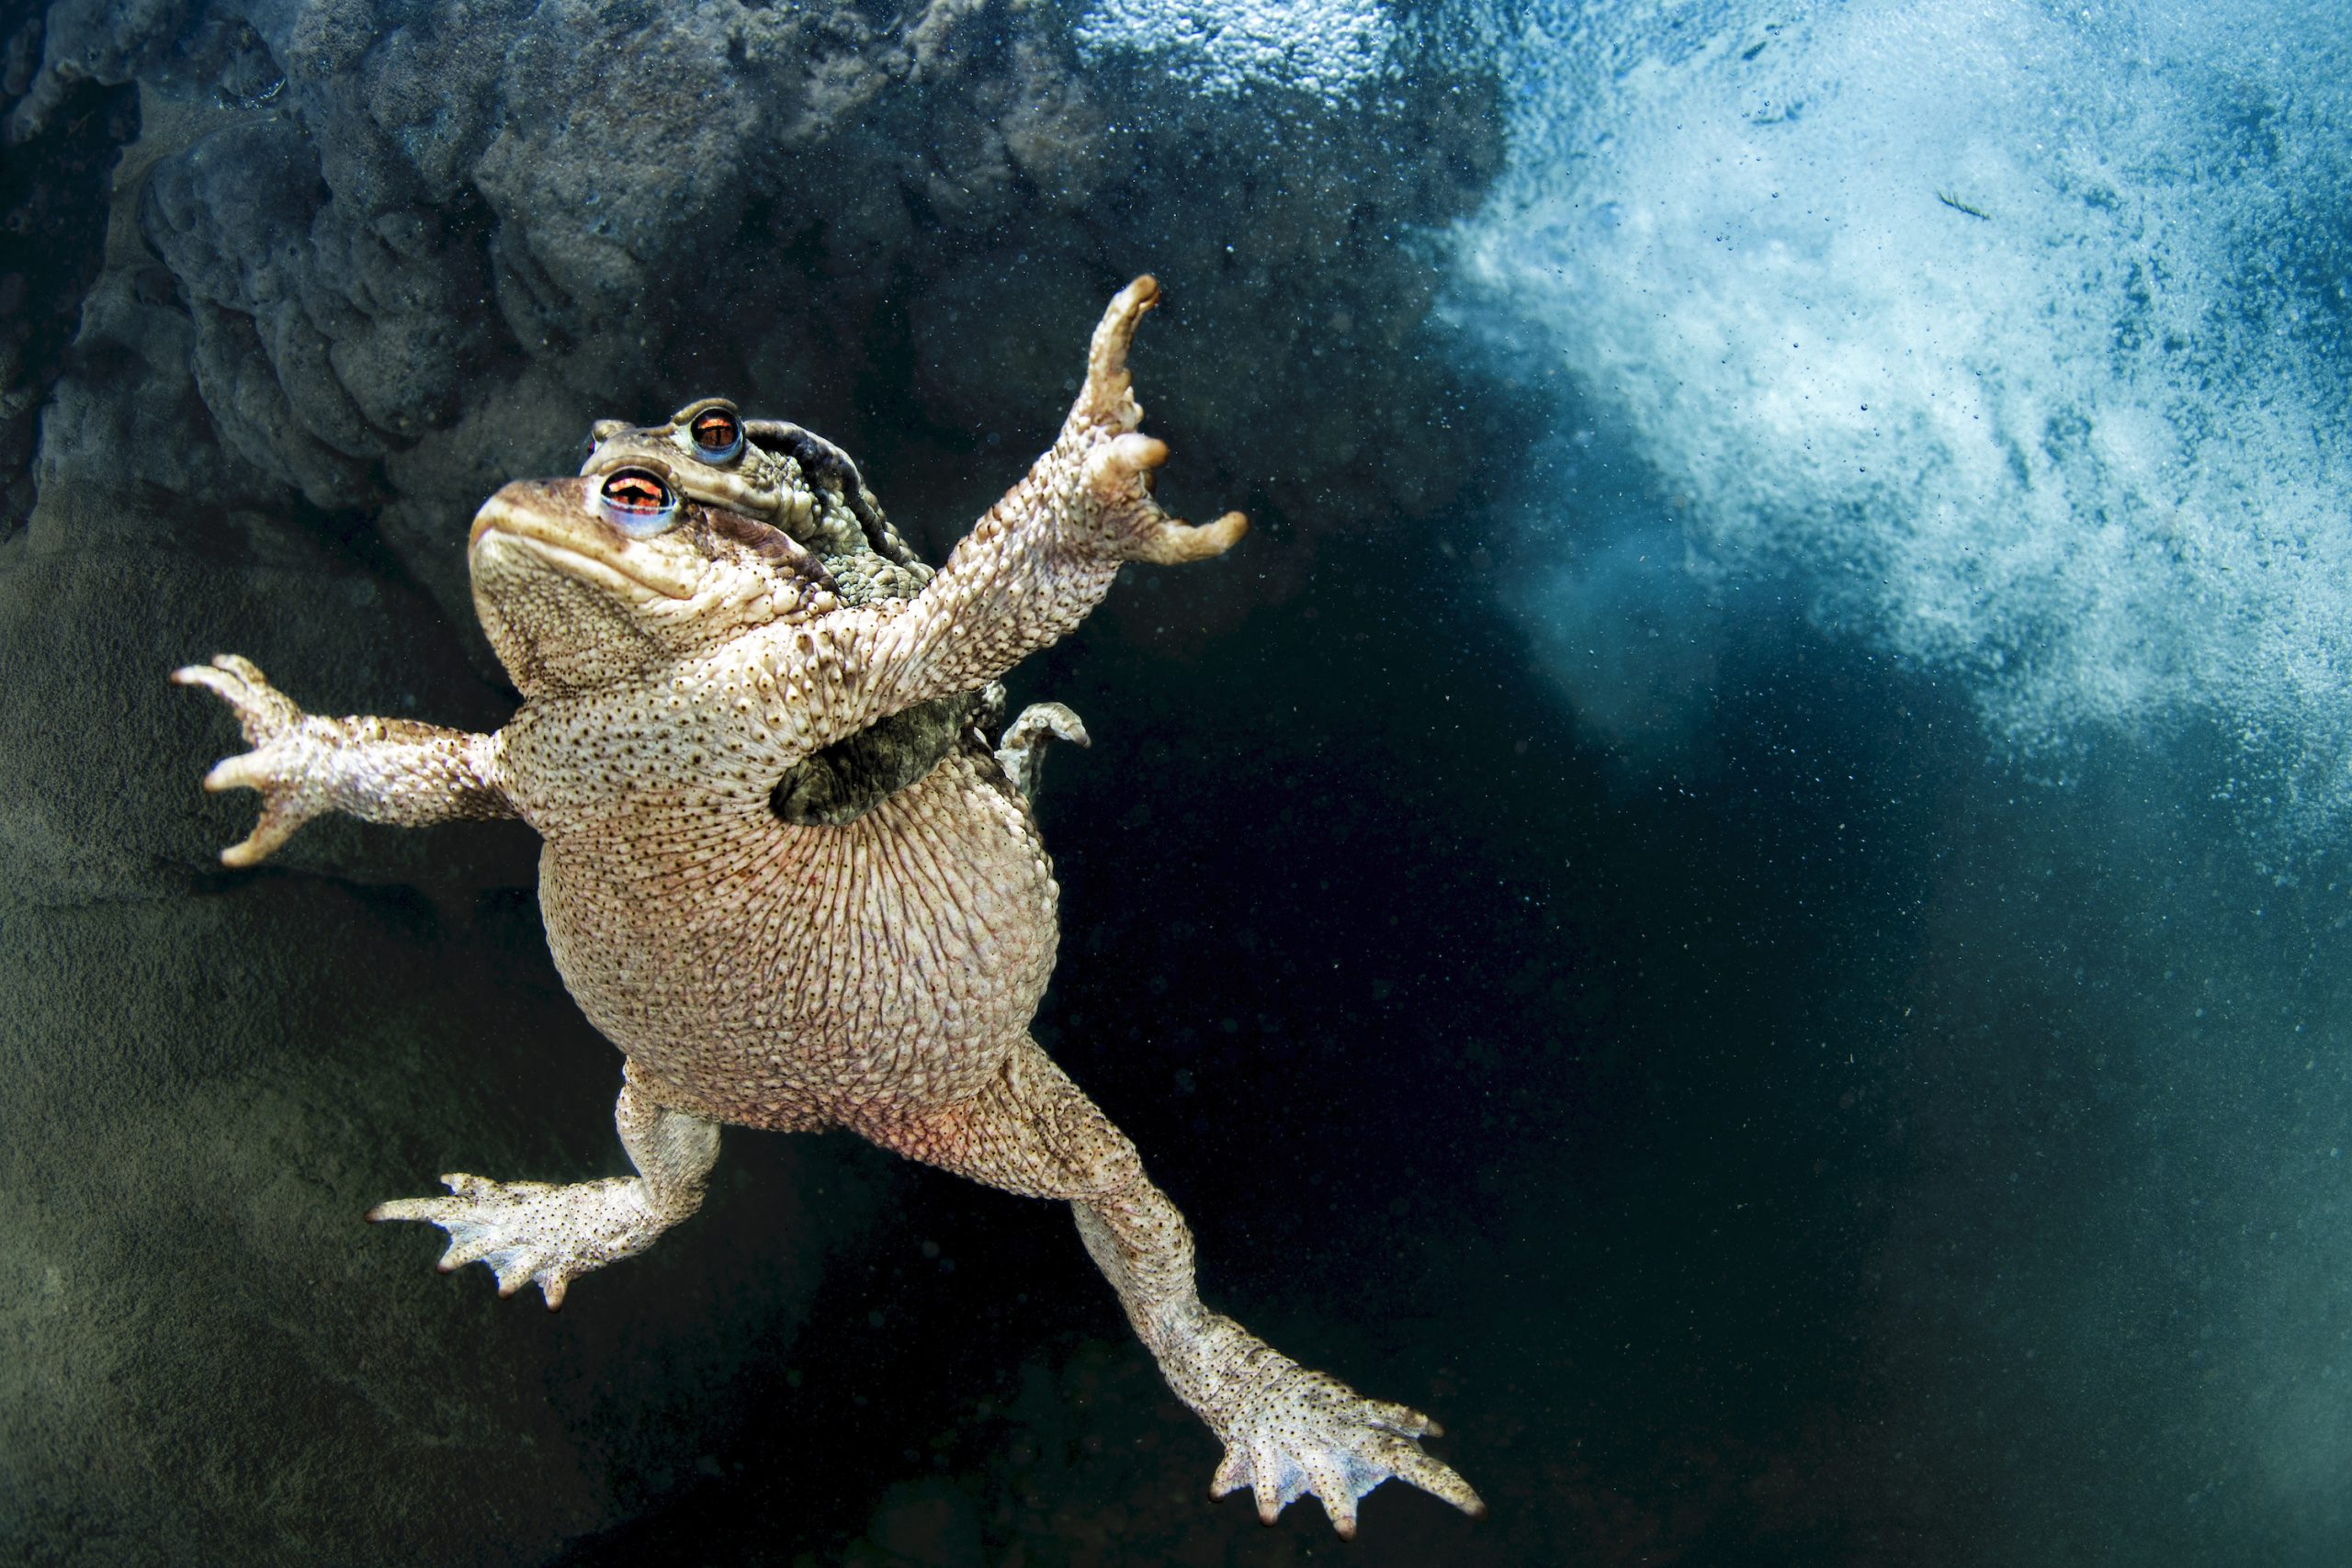 Common toads mating in the Lez River, France